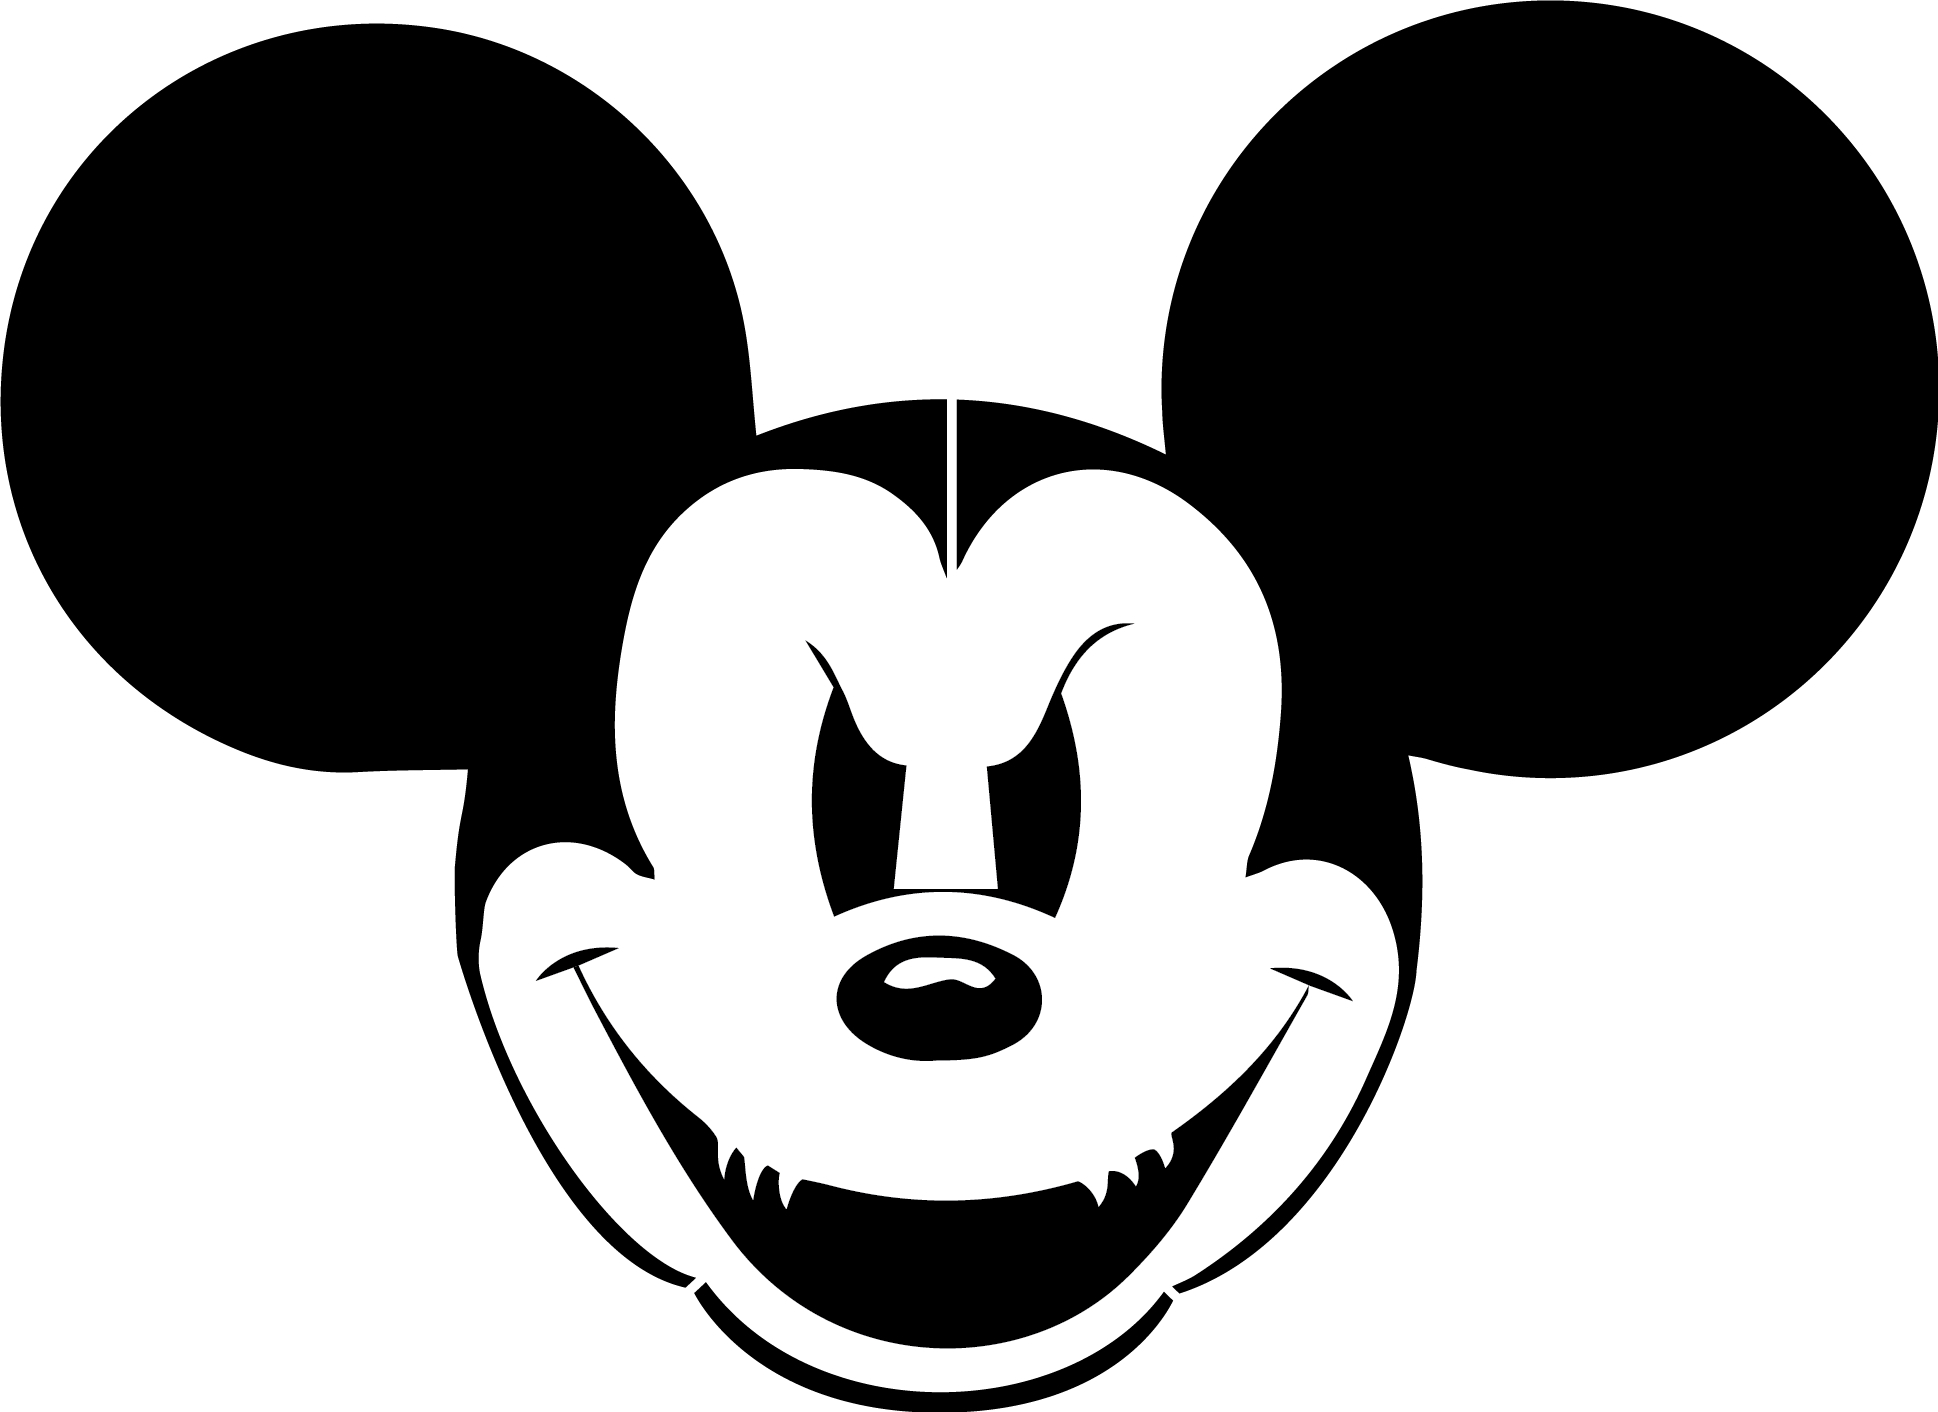 1938x1412 Mickey Mouse Face Pic Wallpapers Mickey Mouse Hd Wallpaper